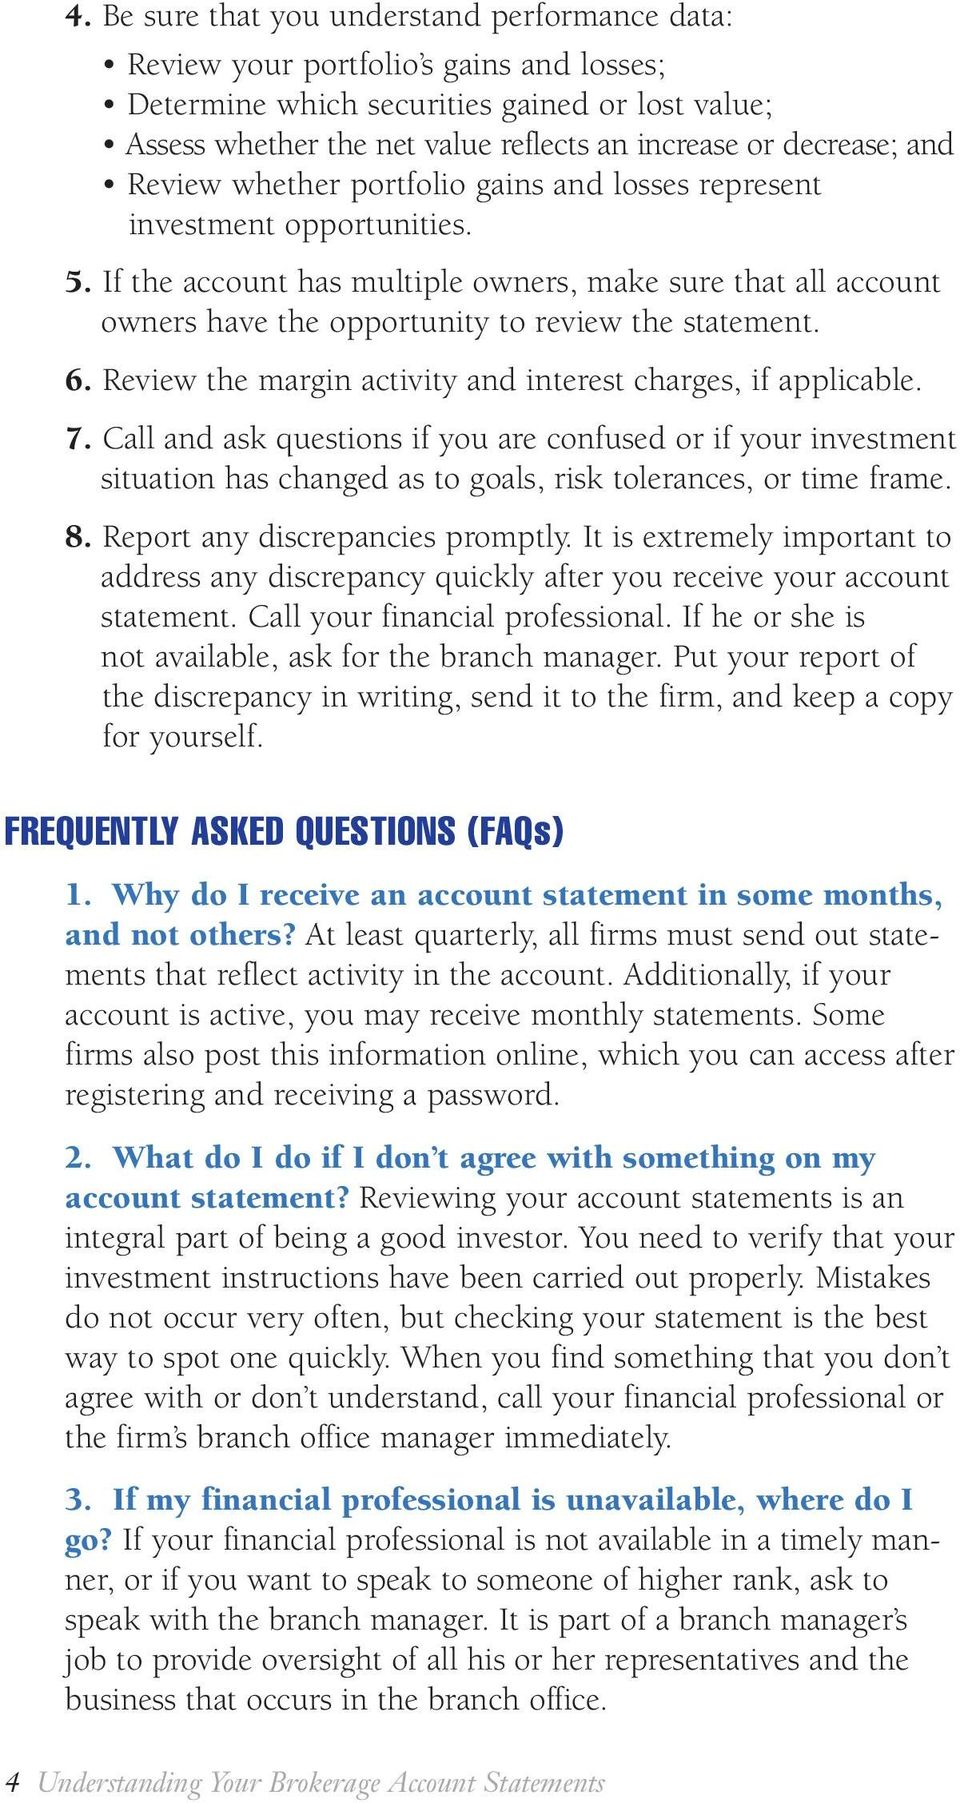 If the account has multiple owners, make sure that all account owners have the opportunity to review the statement. 6. Review the margin activity and interest charges, if applicable. 7.